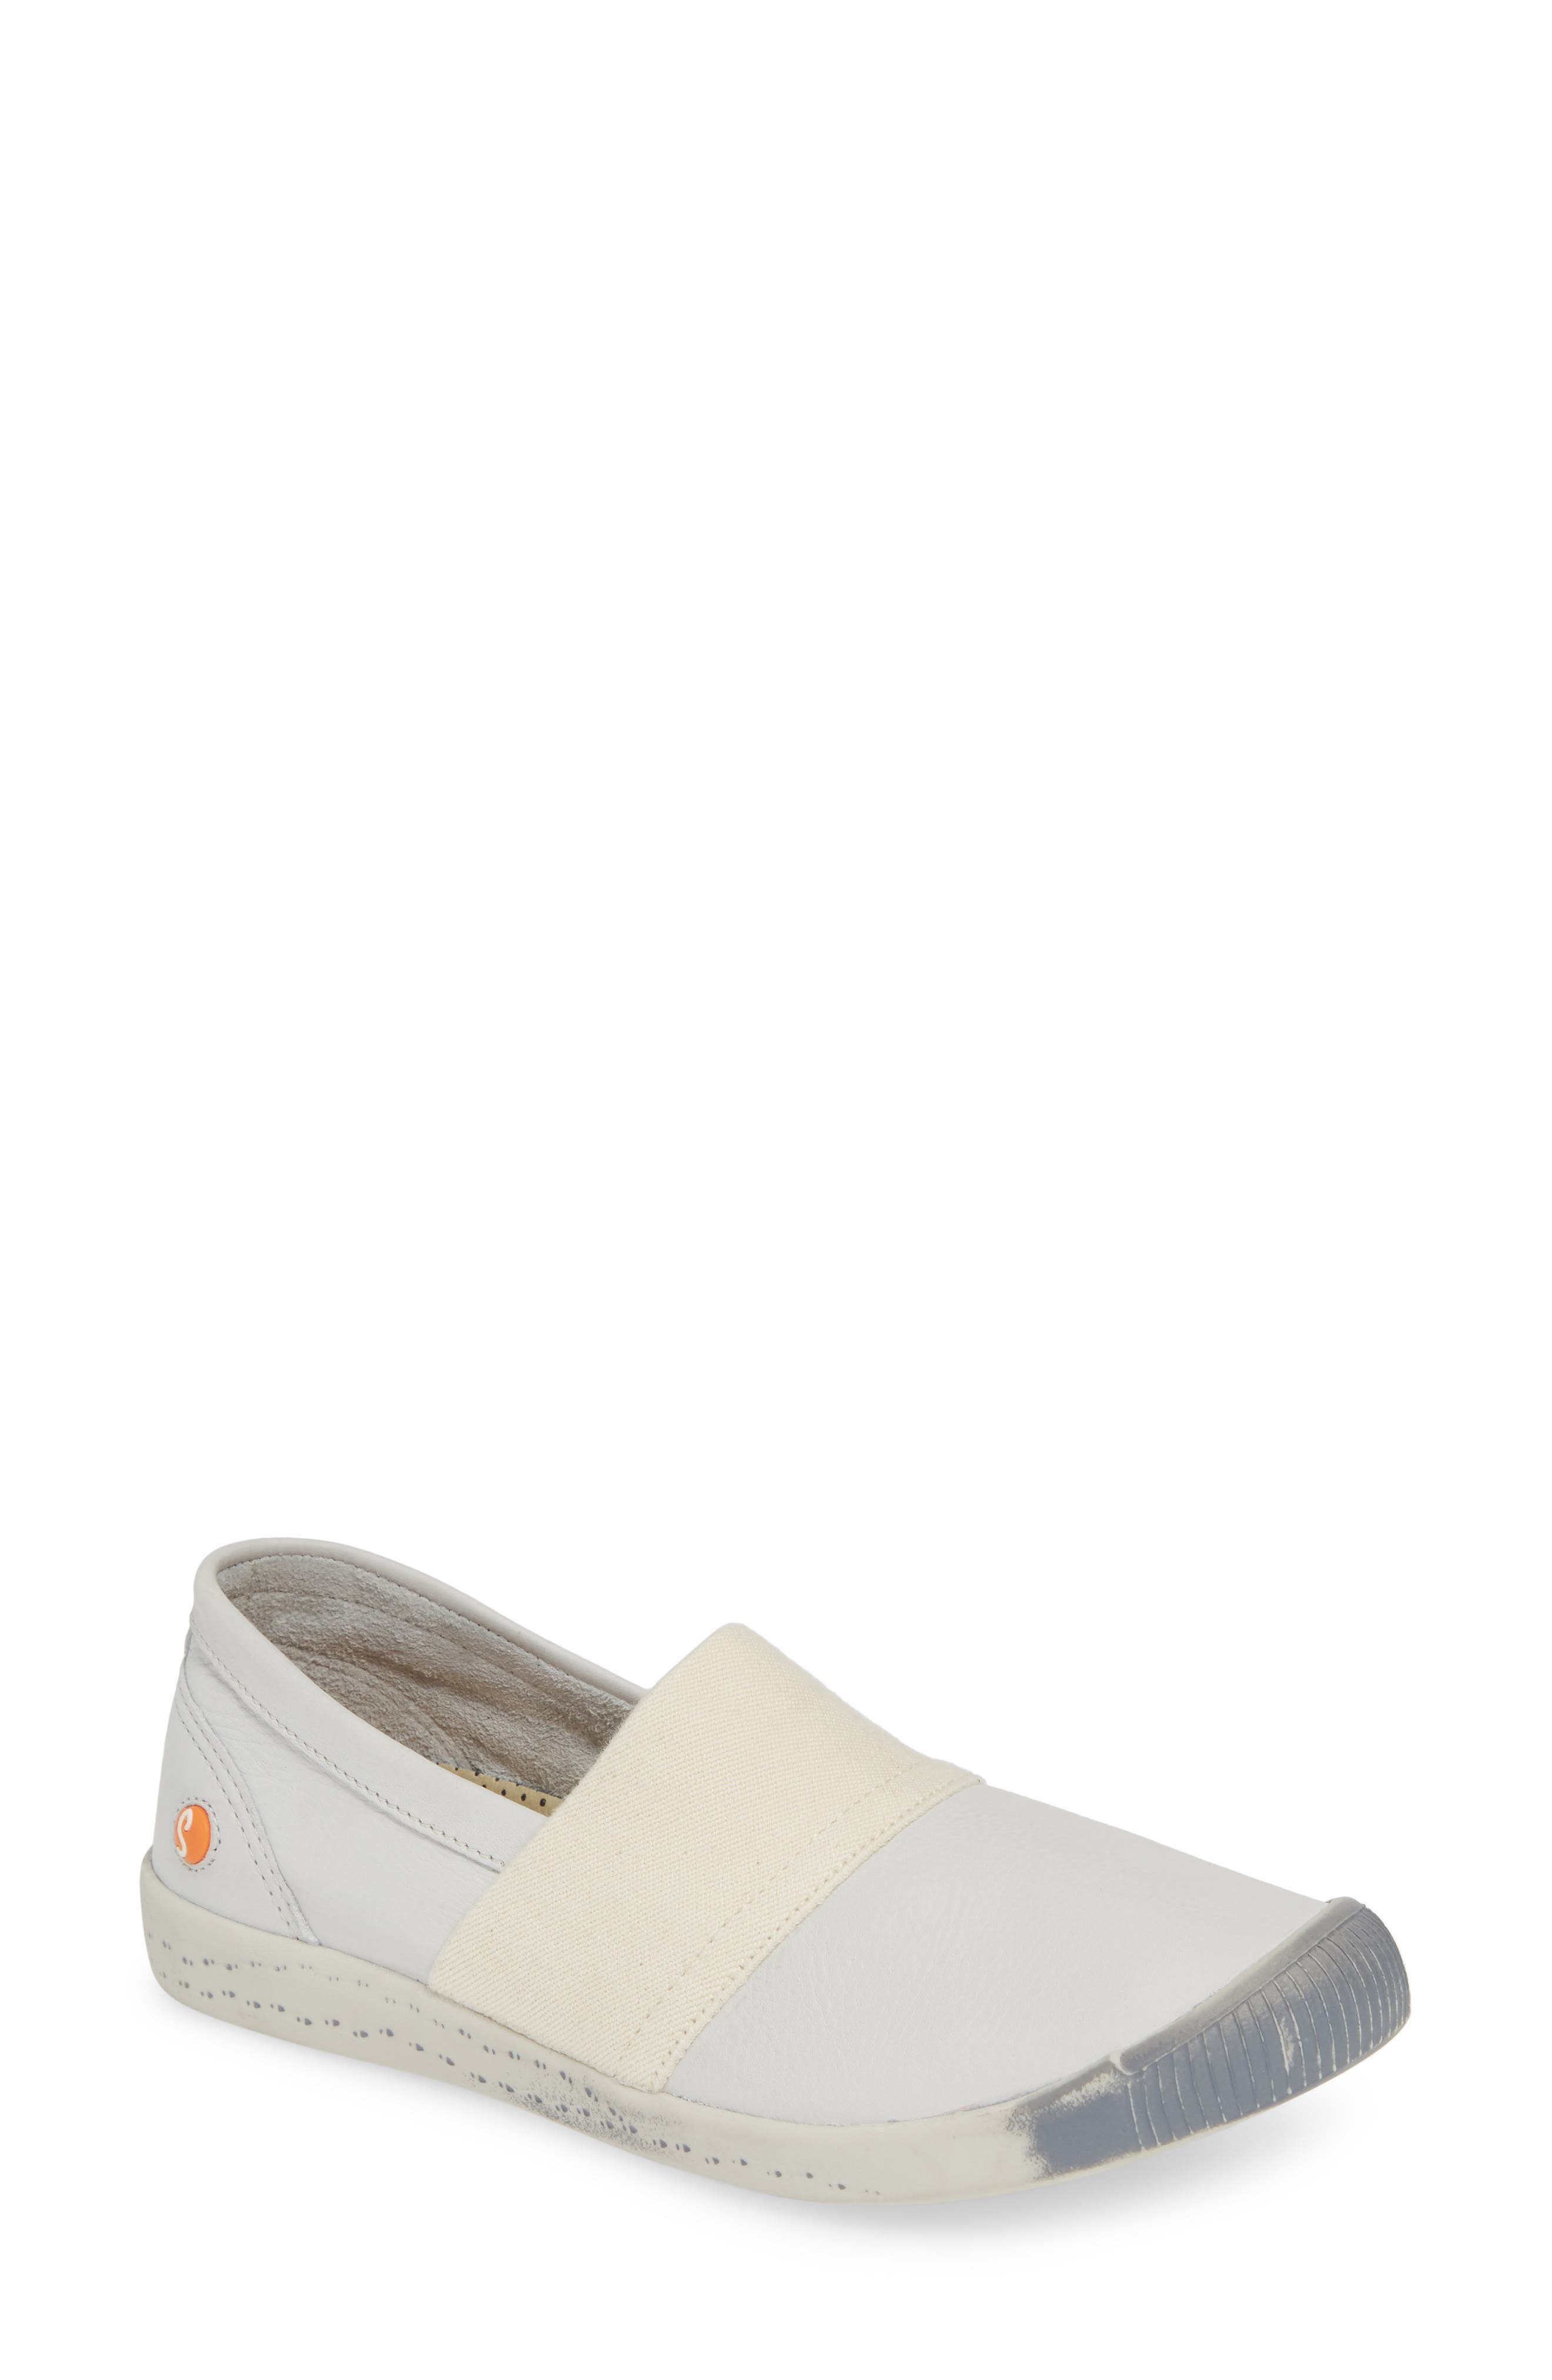 Softinos By Fly London Ino Slip-On Sneaker - White